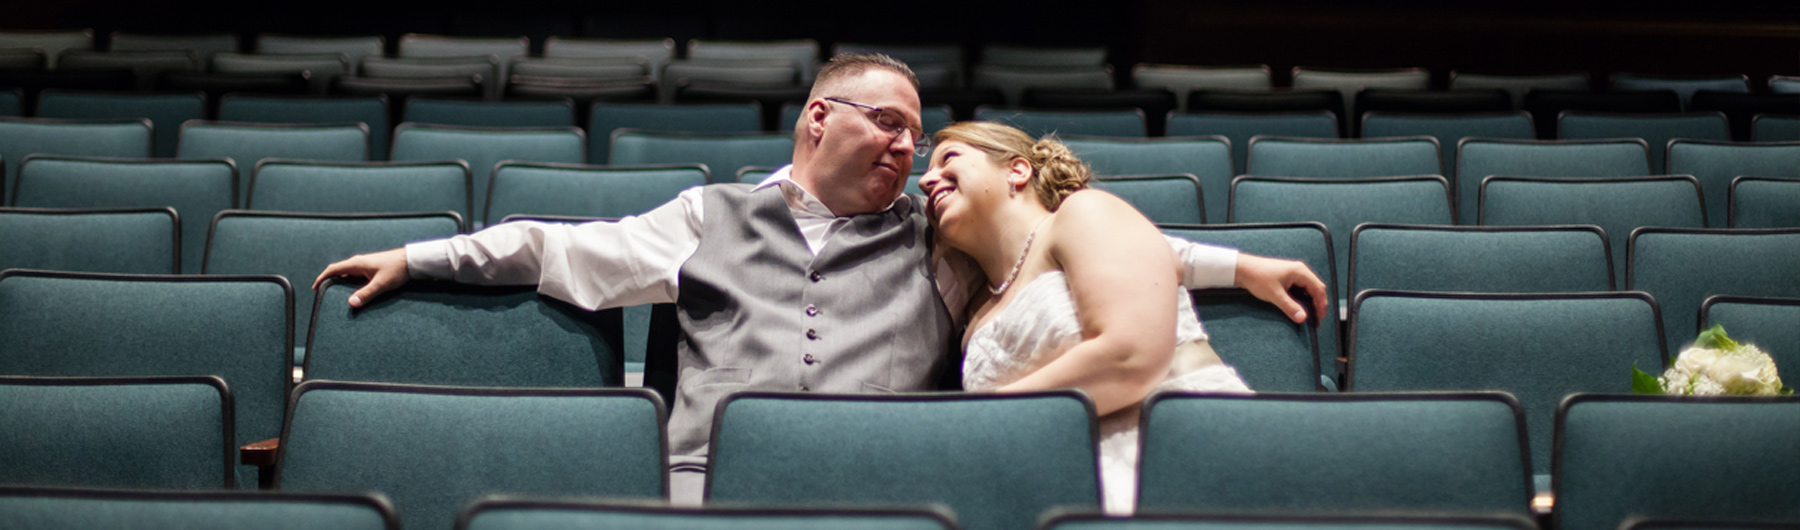 image of newlyweds in empty theatre space